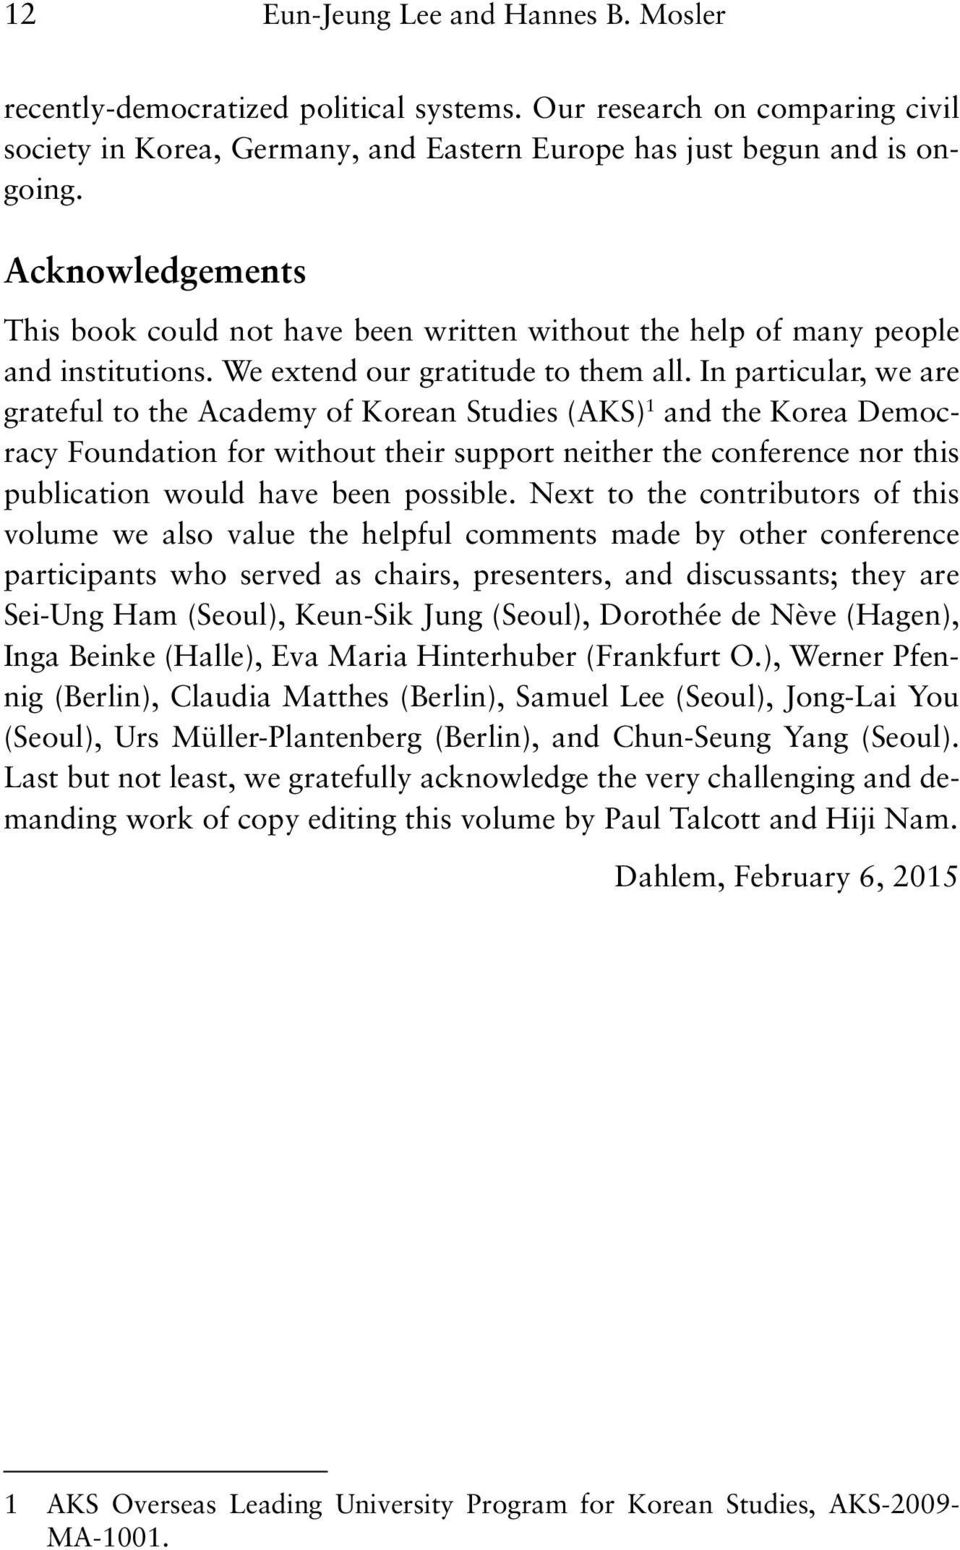 In particular, we are grateful to the Academy of Korean Studies (AKS) 1 and the Korea Democracy Foundation for without their support neither the conference nor this publication would have been